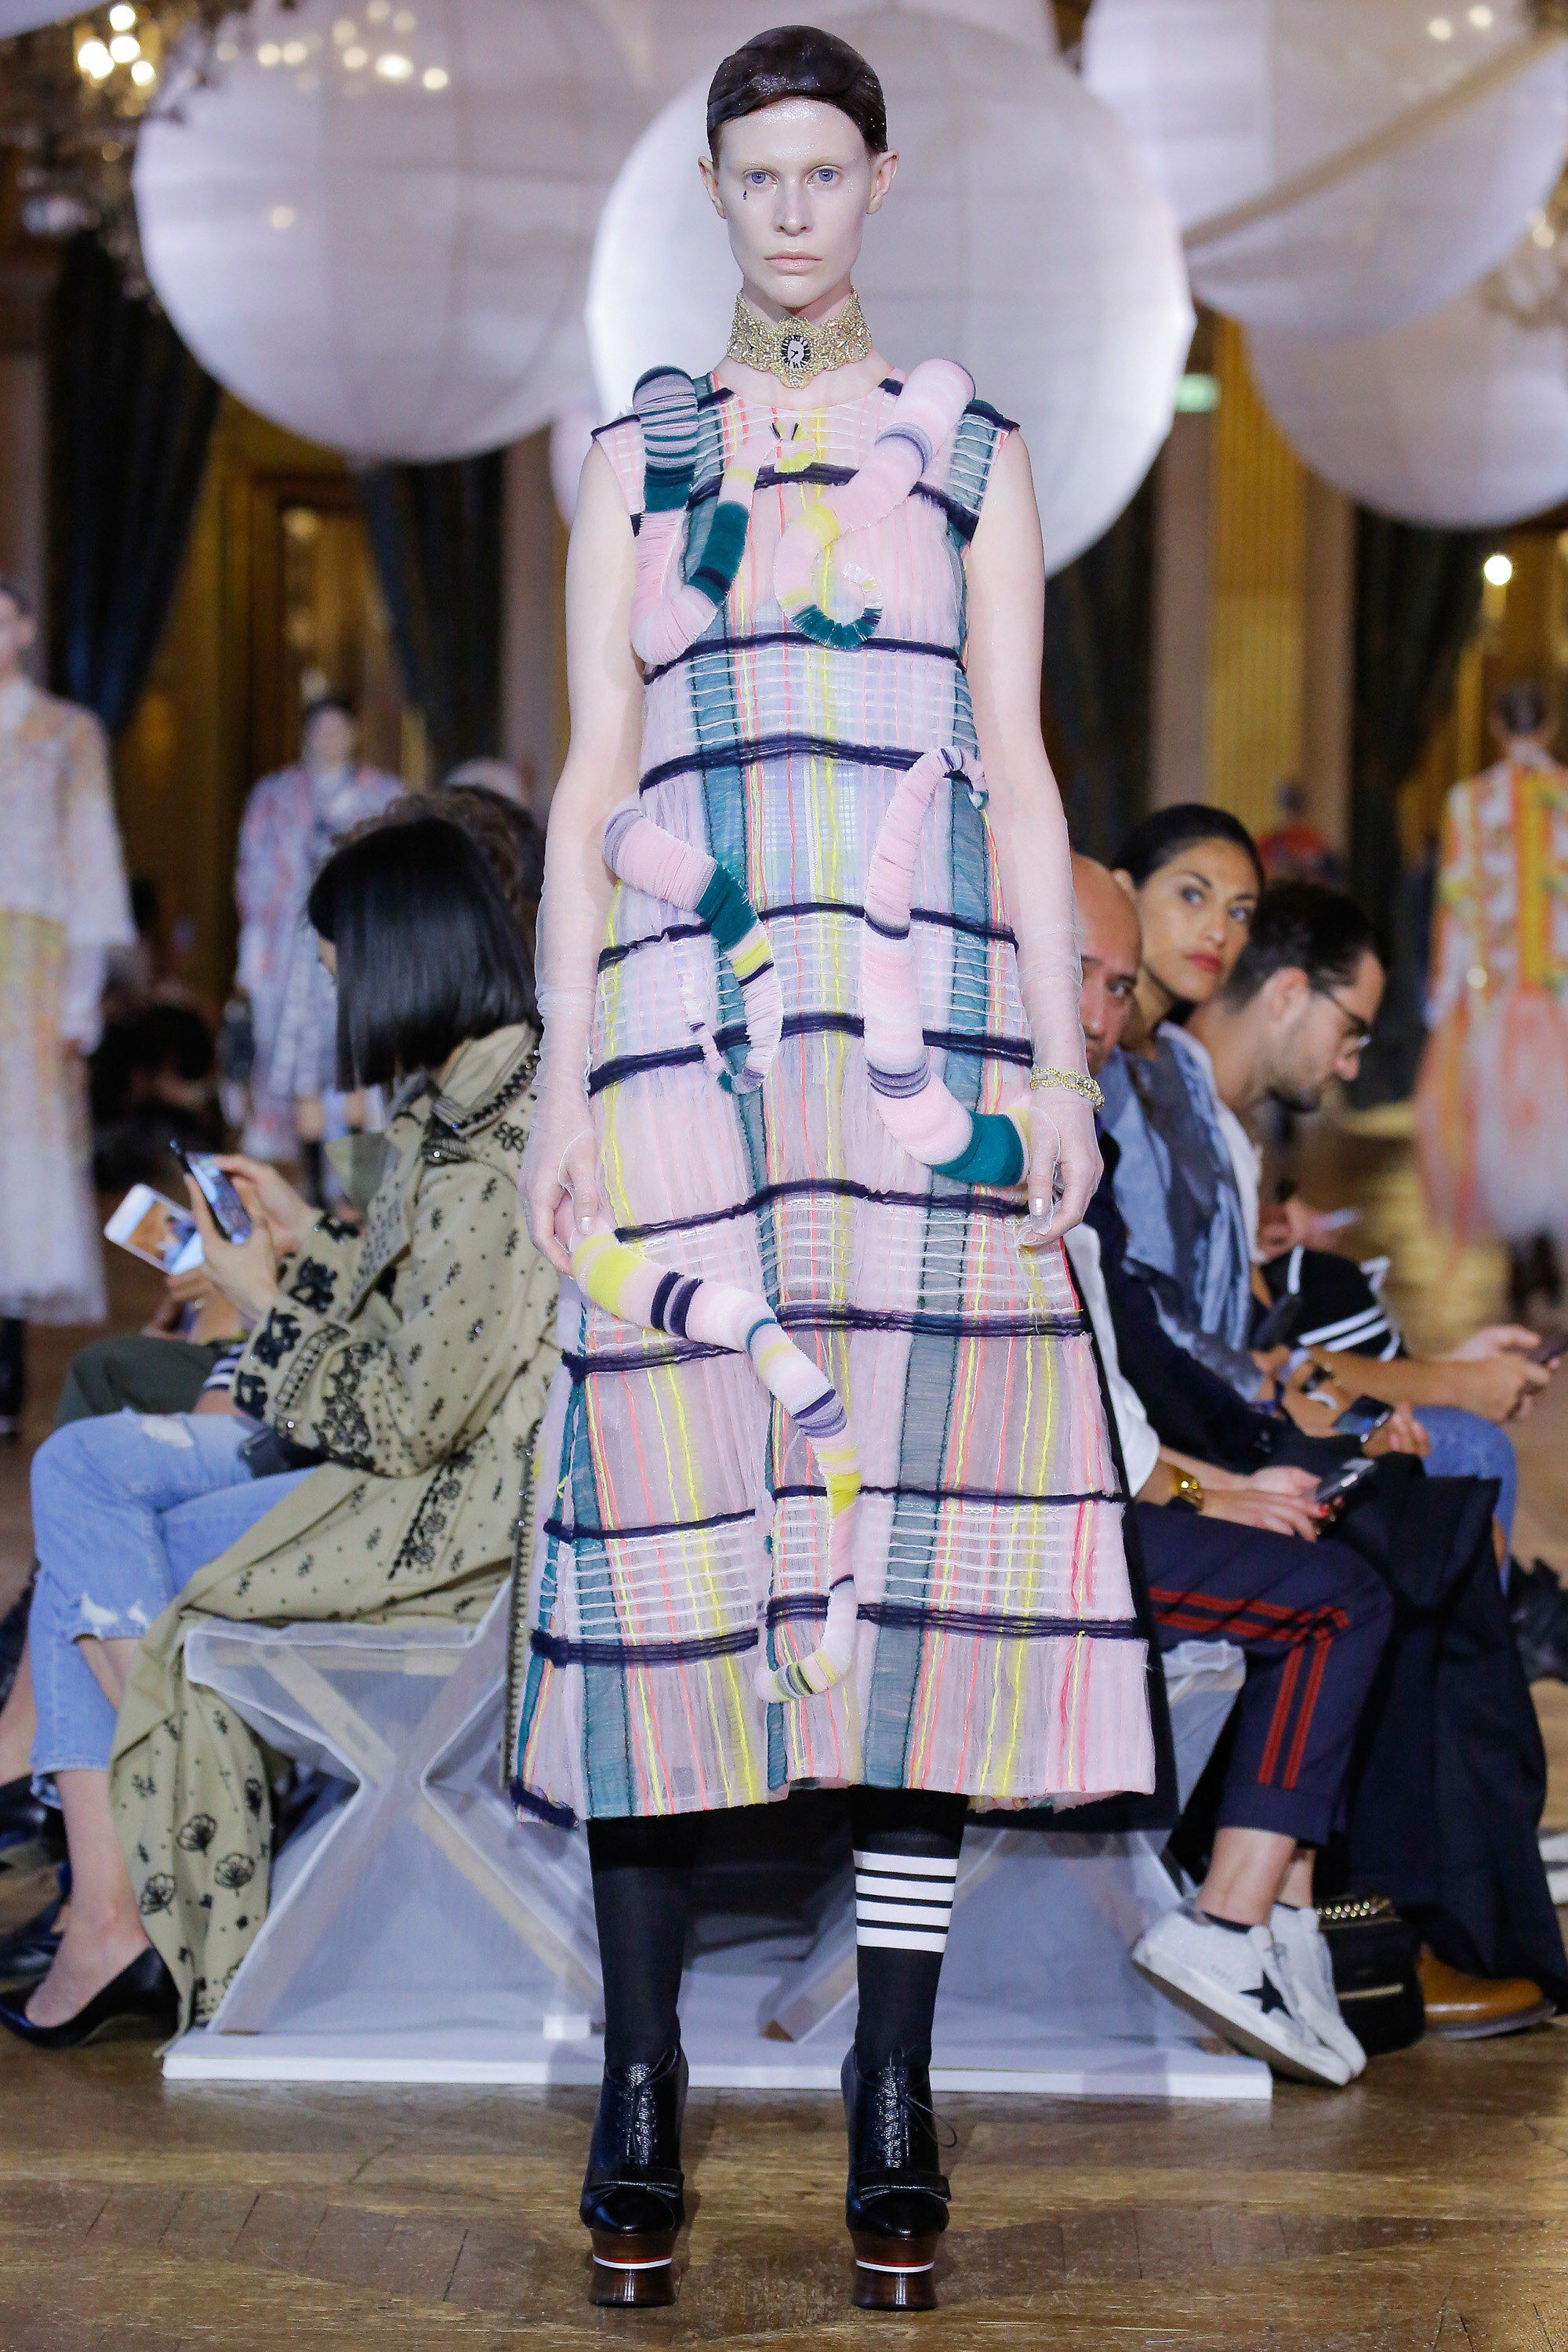 Discussion on this topic: Thom Browne Built a Church, and the , thom-browne-built-a-church-and-the/